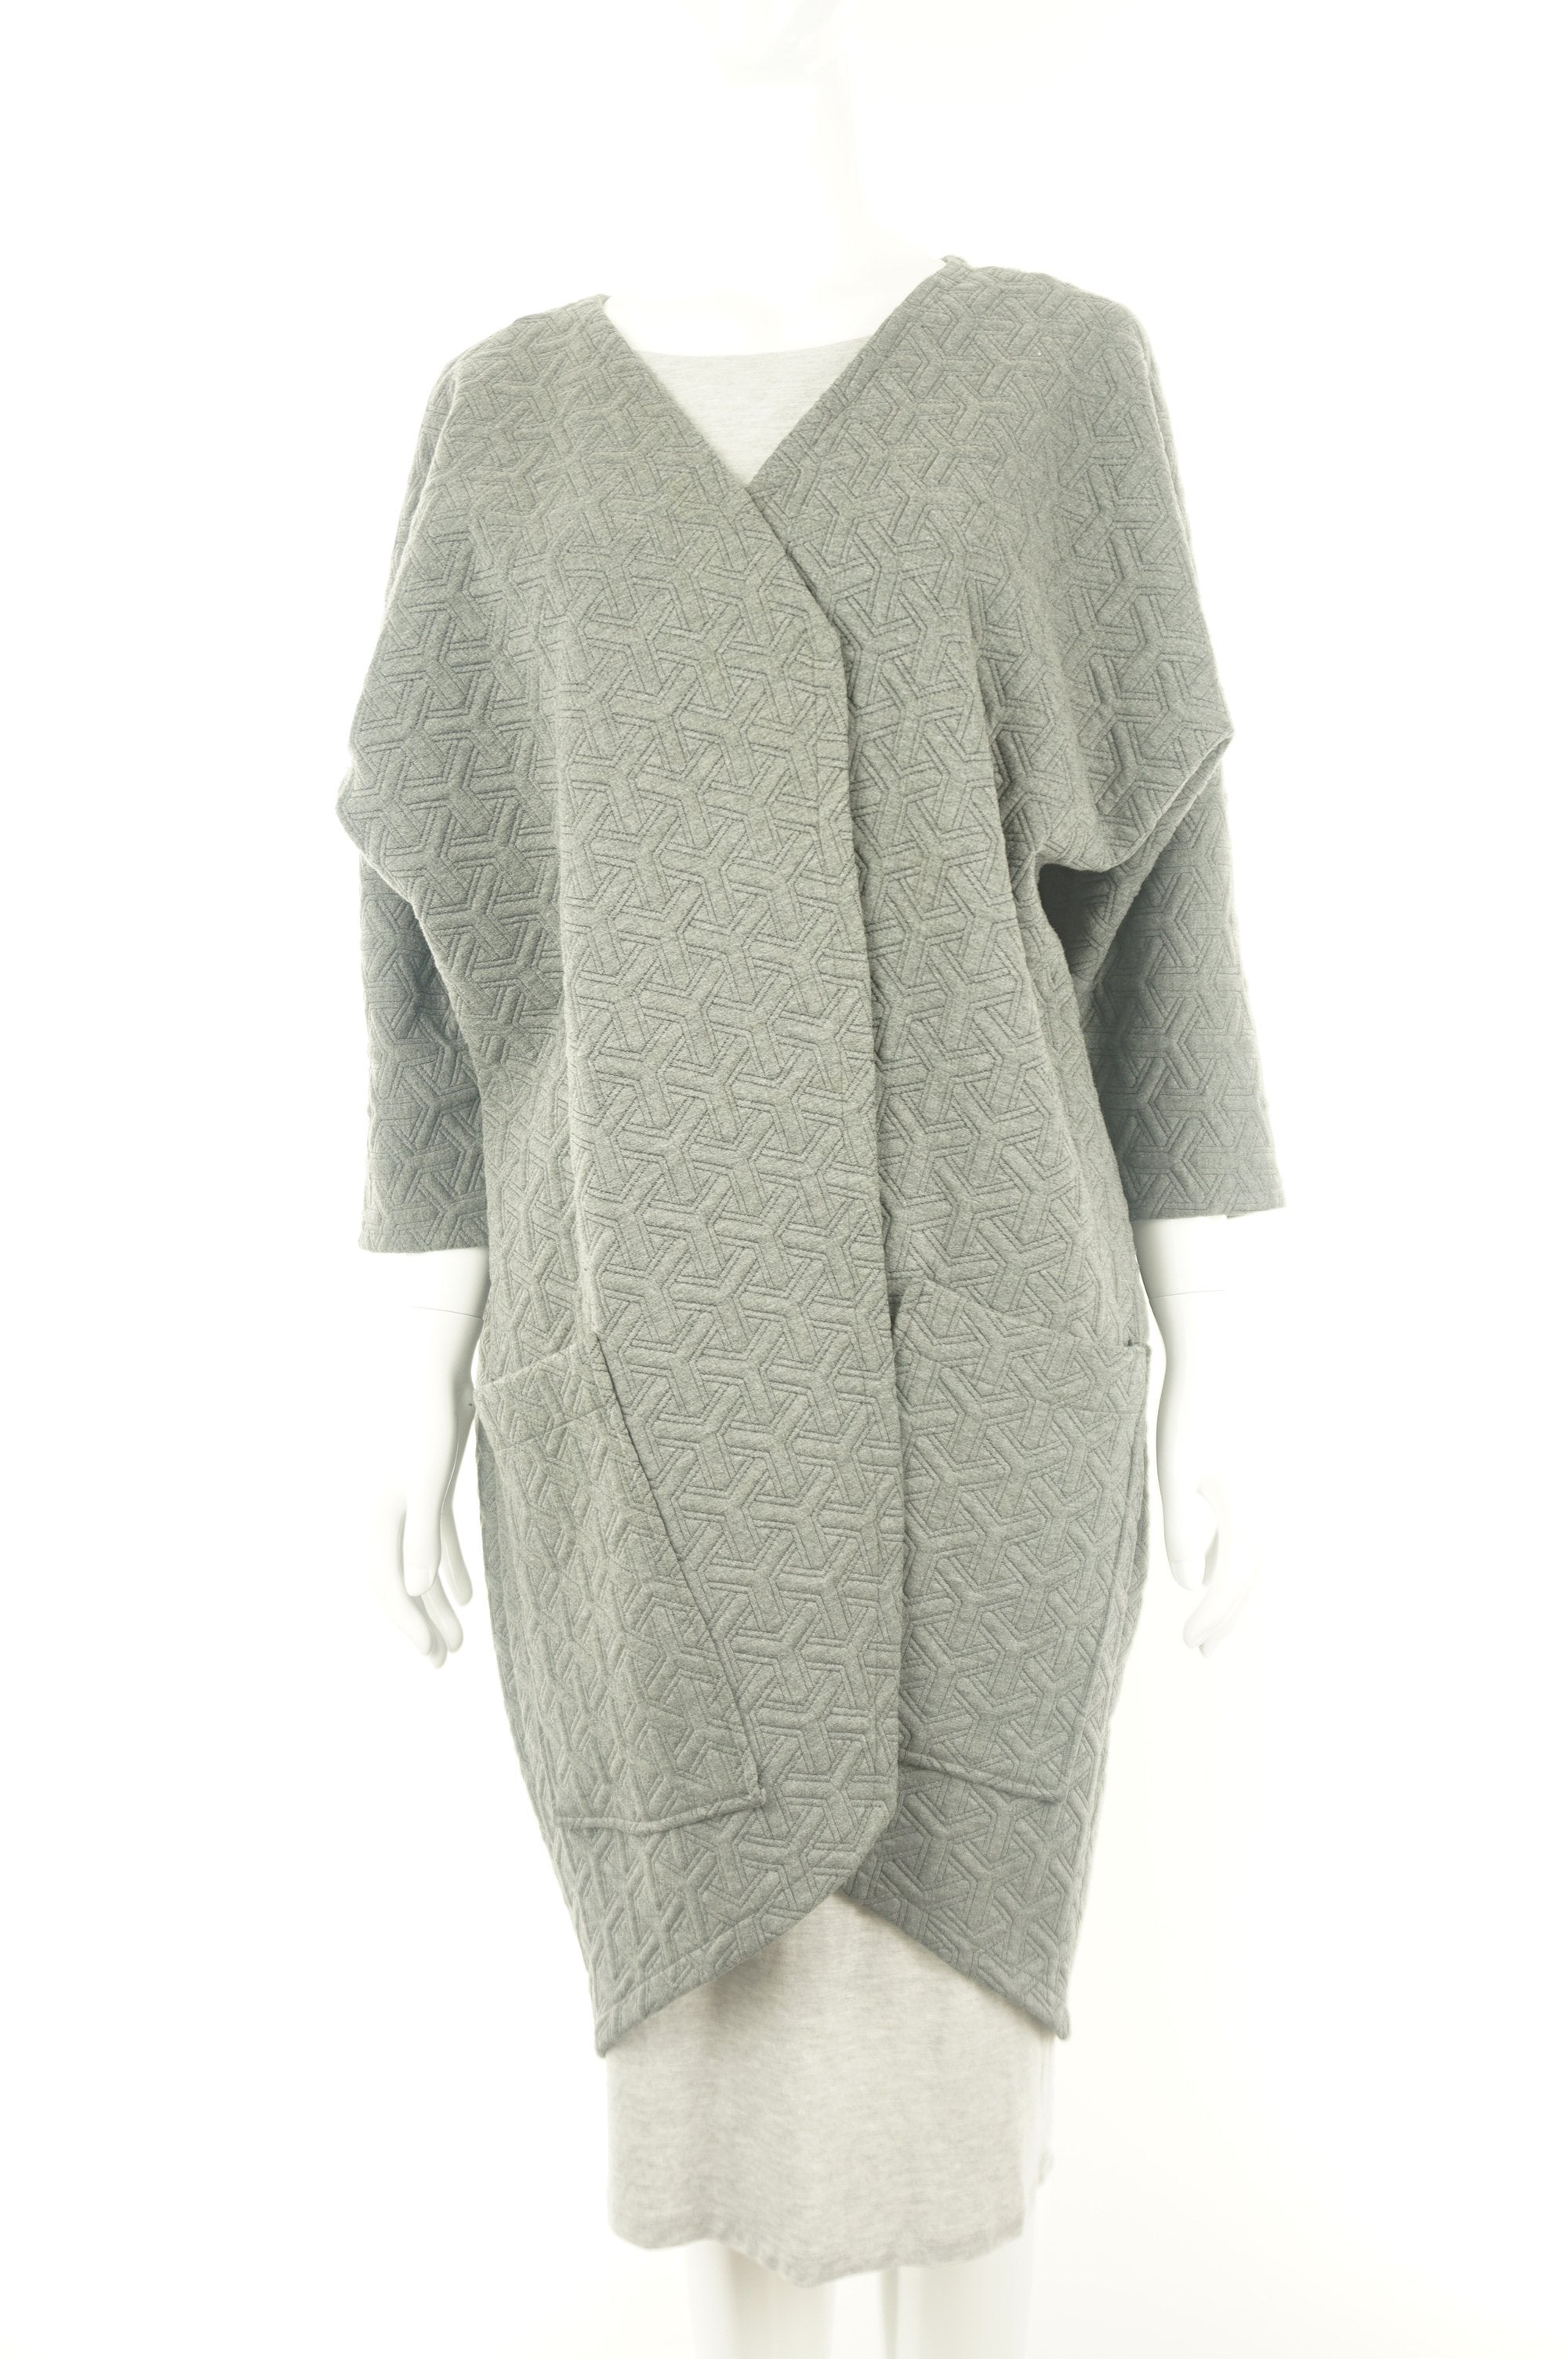 KAI&KLO Quilted Long Coat, Modern and minimal design. Made in Canada., Grey, Spandex, Rayon, polyester,